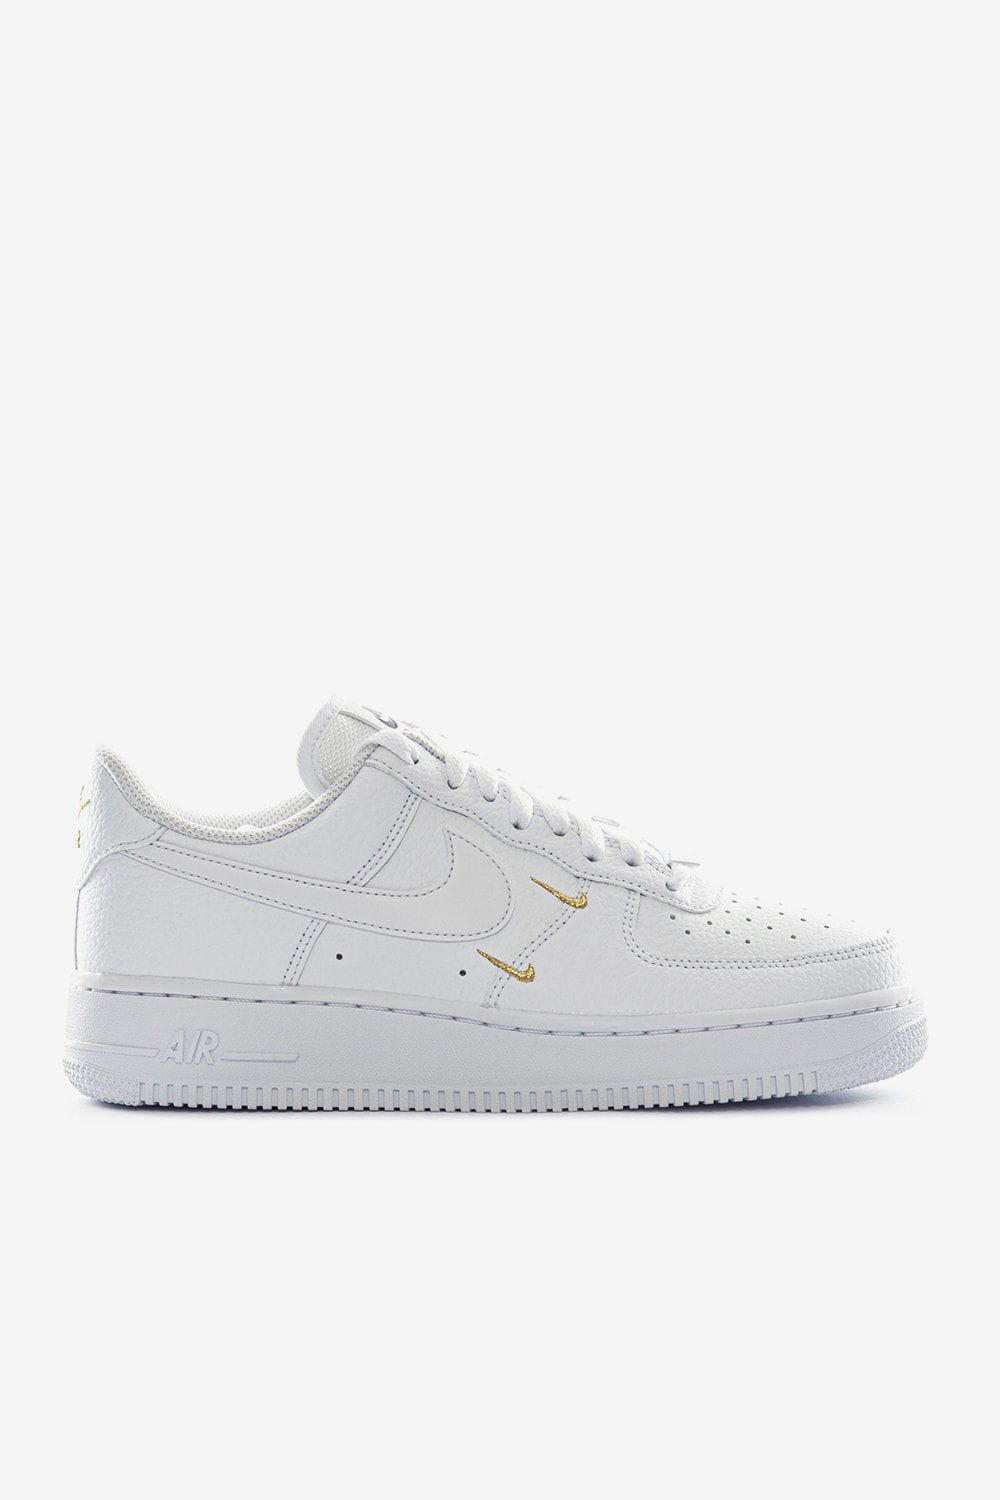 Nike Footwear Air Force 1 '07 Essential WMNS